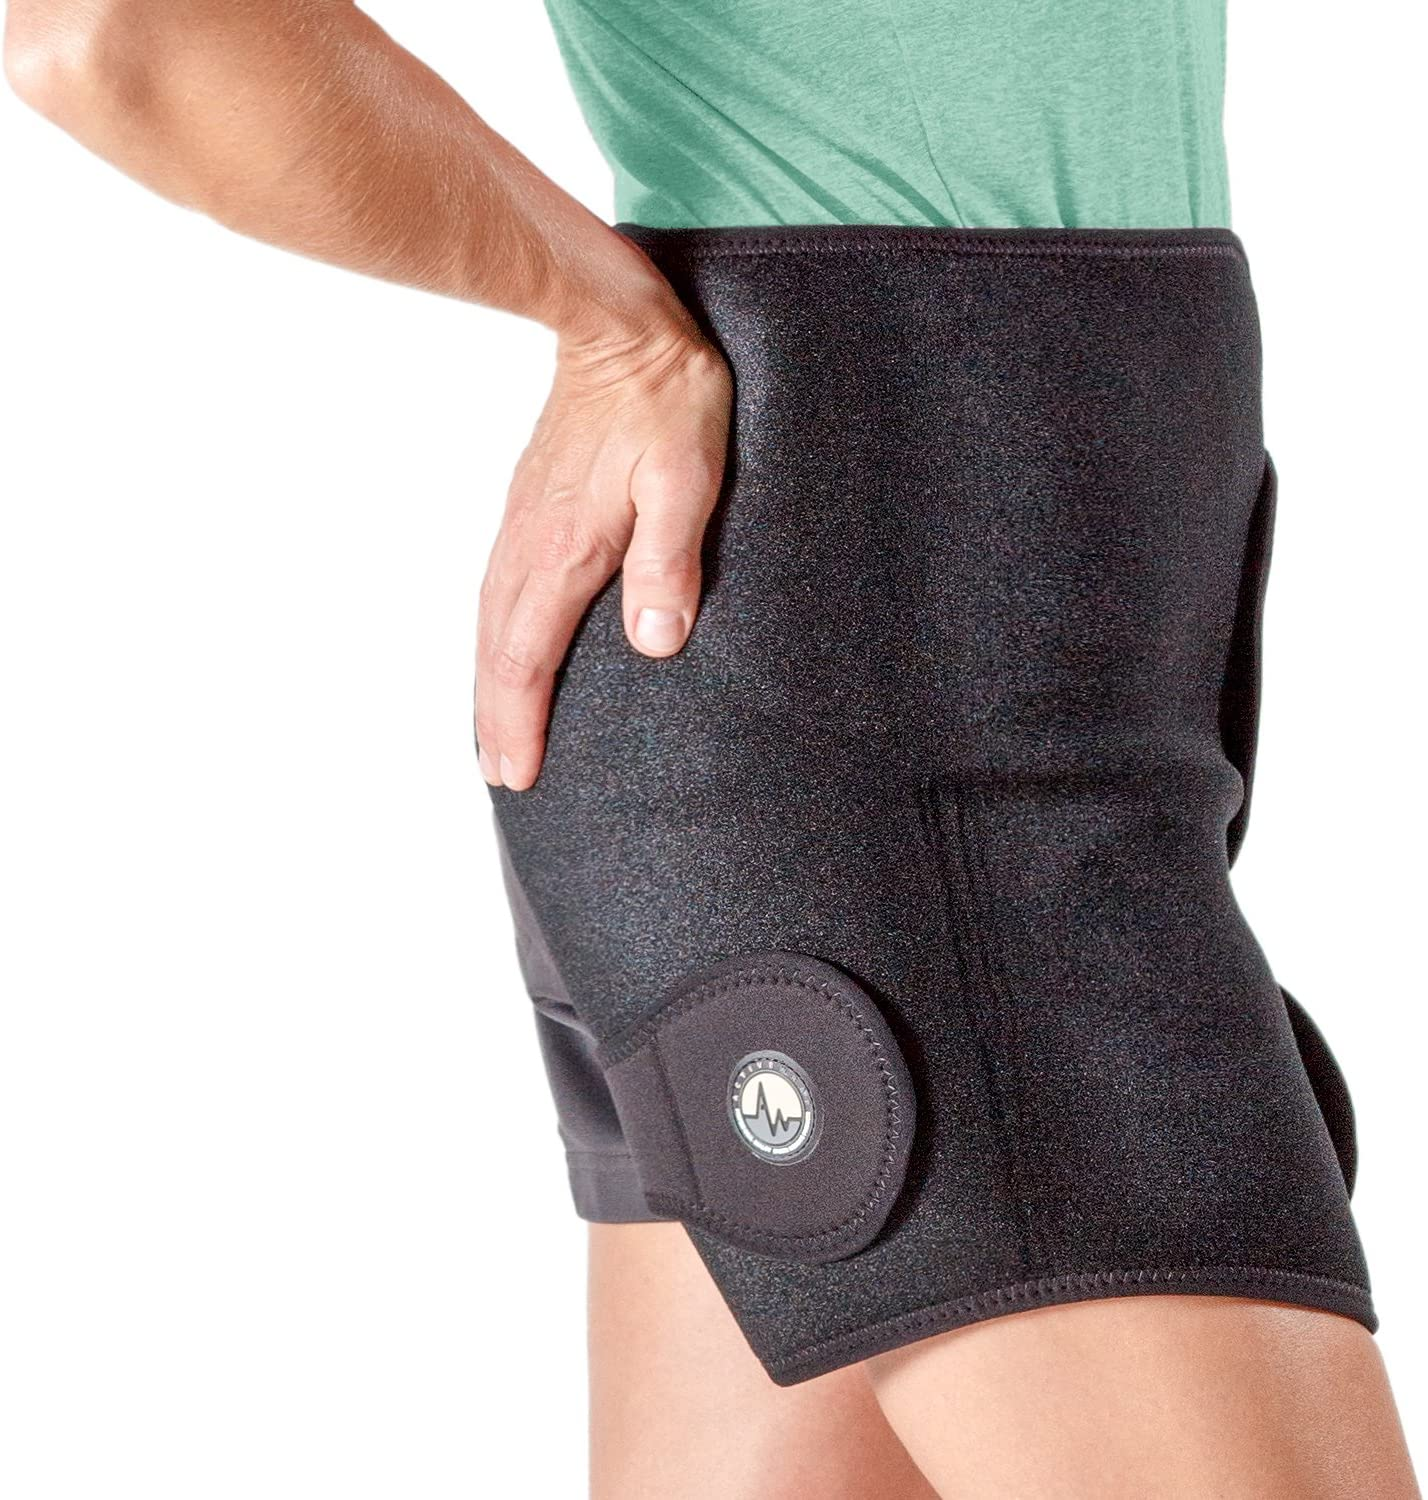 ActiveWrap Hip OFFicial shop Ice Max 72% OFF Pack Wrap With Reusable - Hot Packs Cold Hi